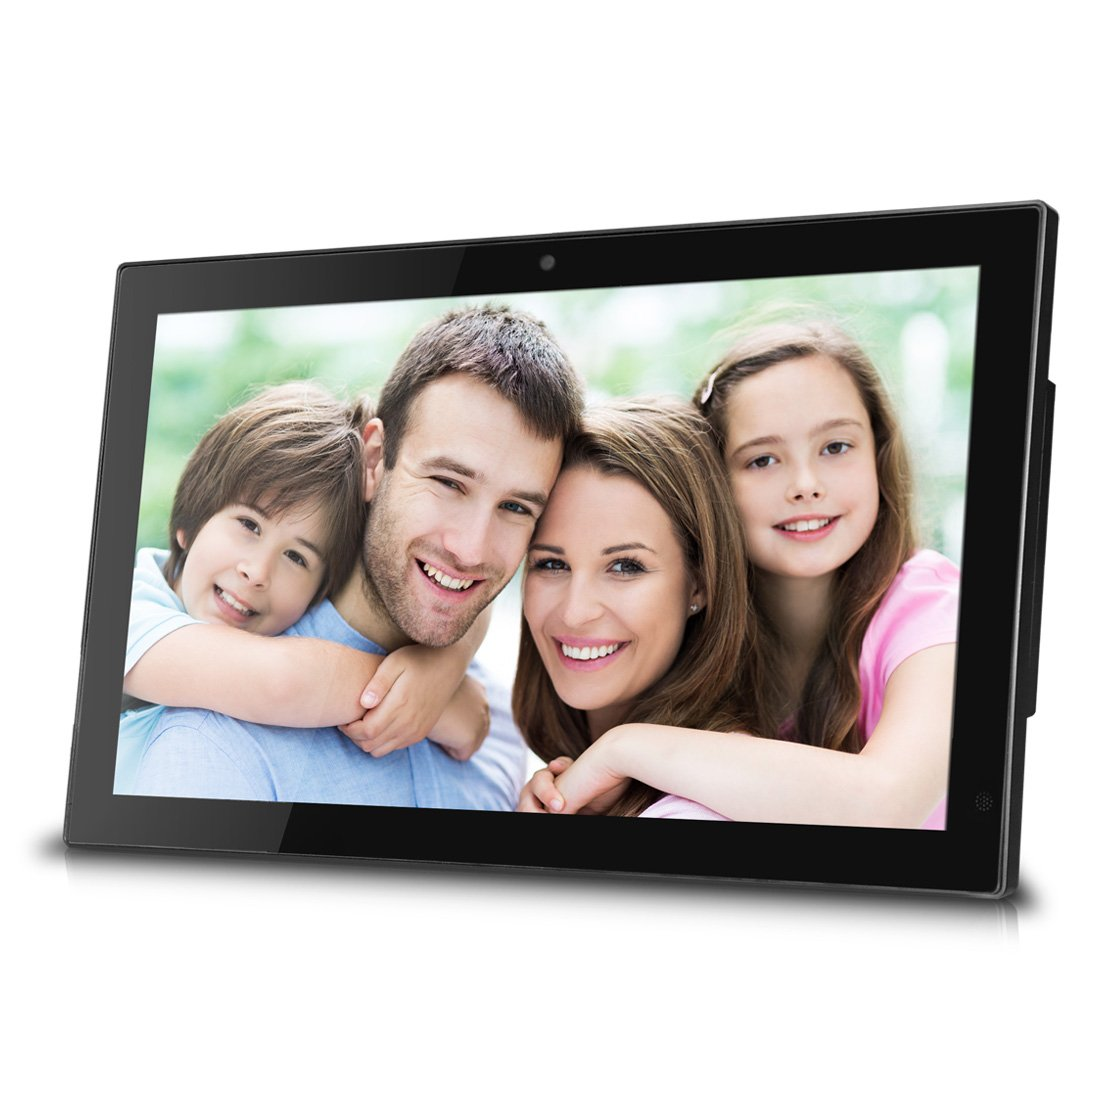 Sungale 14 Inch WiFi Cloud Digital Photo Frame with Front Camera, Remote Control, Free Cloud Storage, High-Resolution 1366x768 LED Display (Black) by Sungale